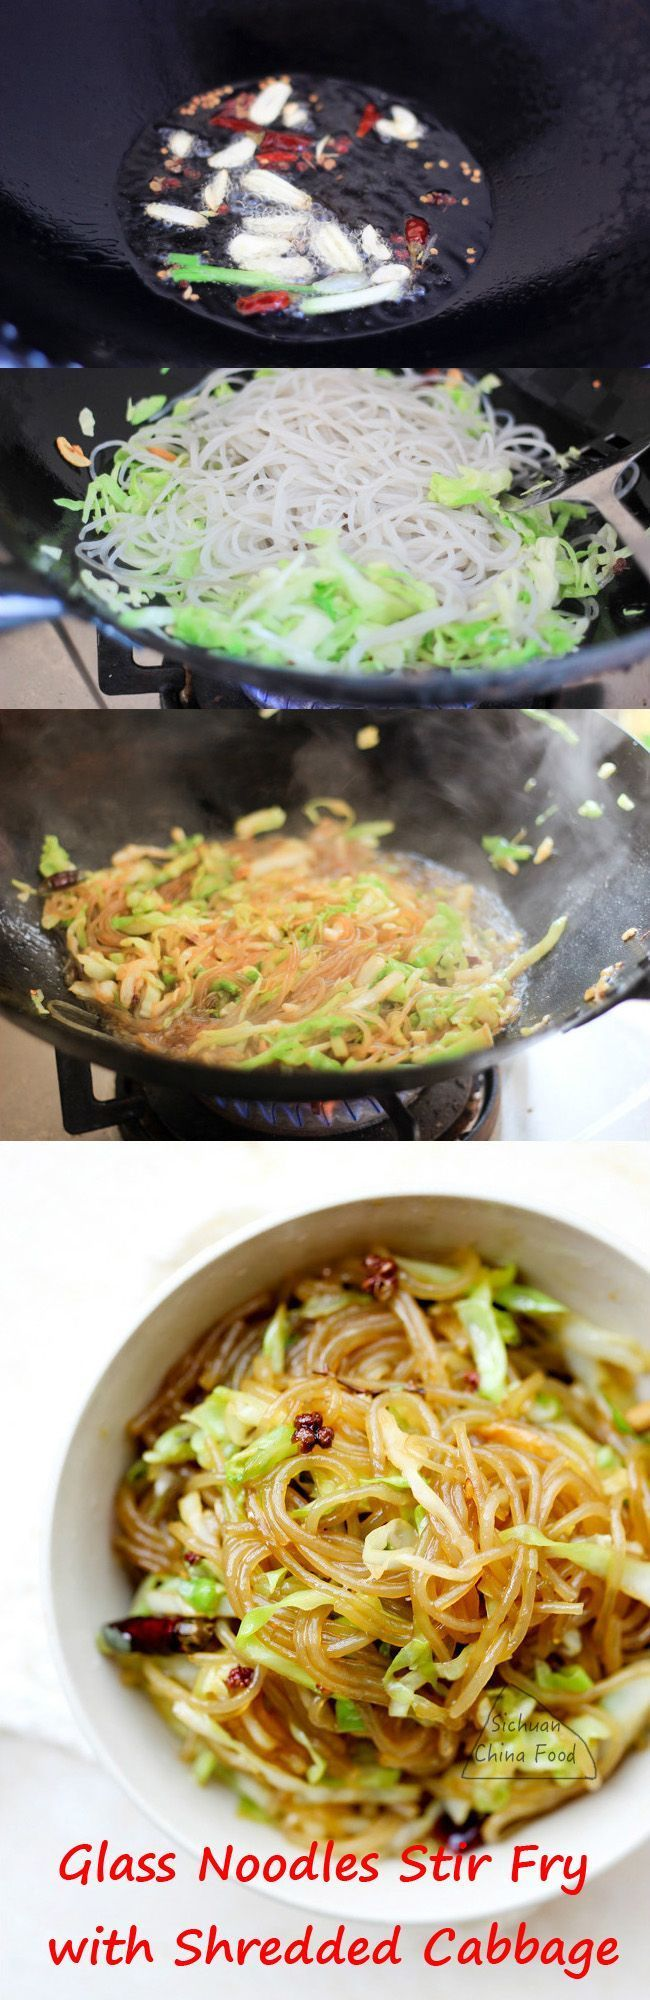 Glass Noodles Stir Fry with Shredded Cabbage  | China Sichuan Food